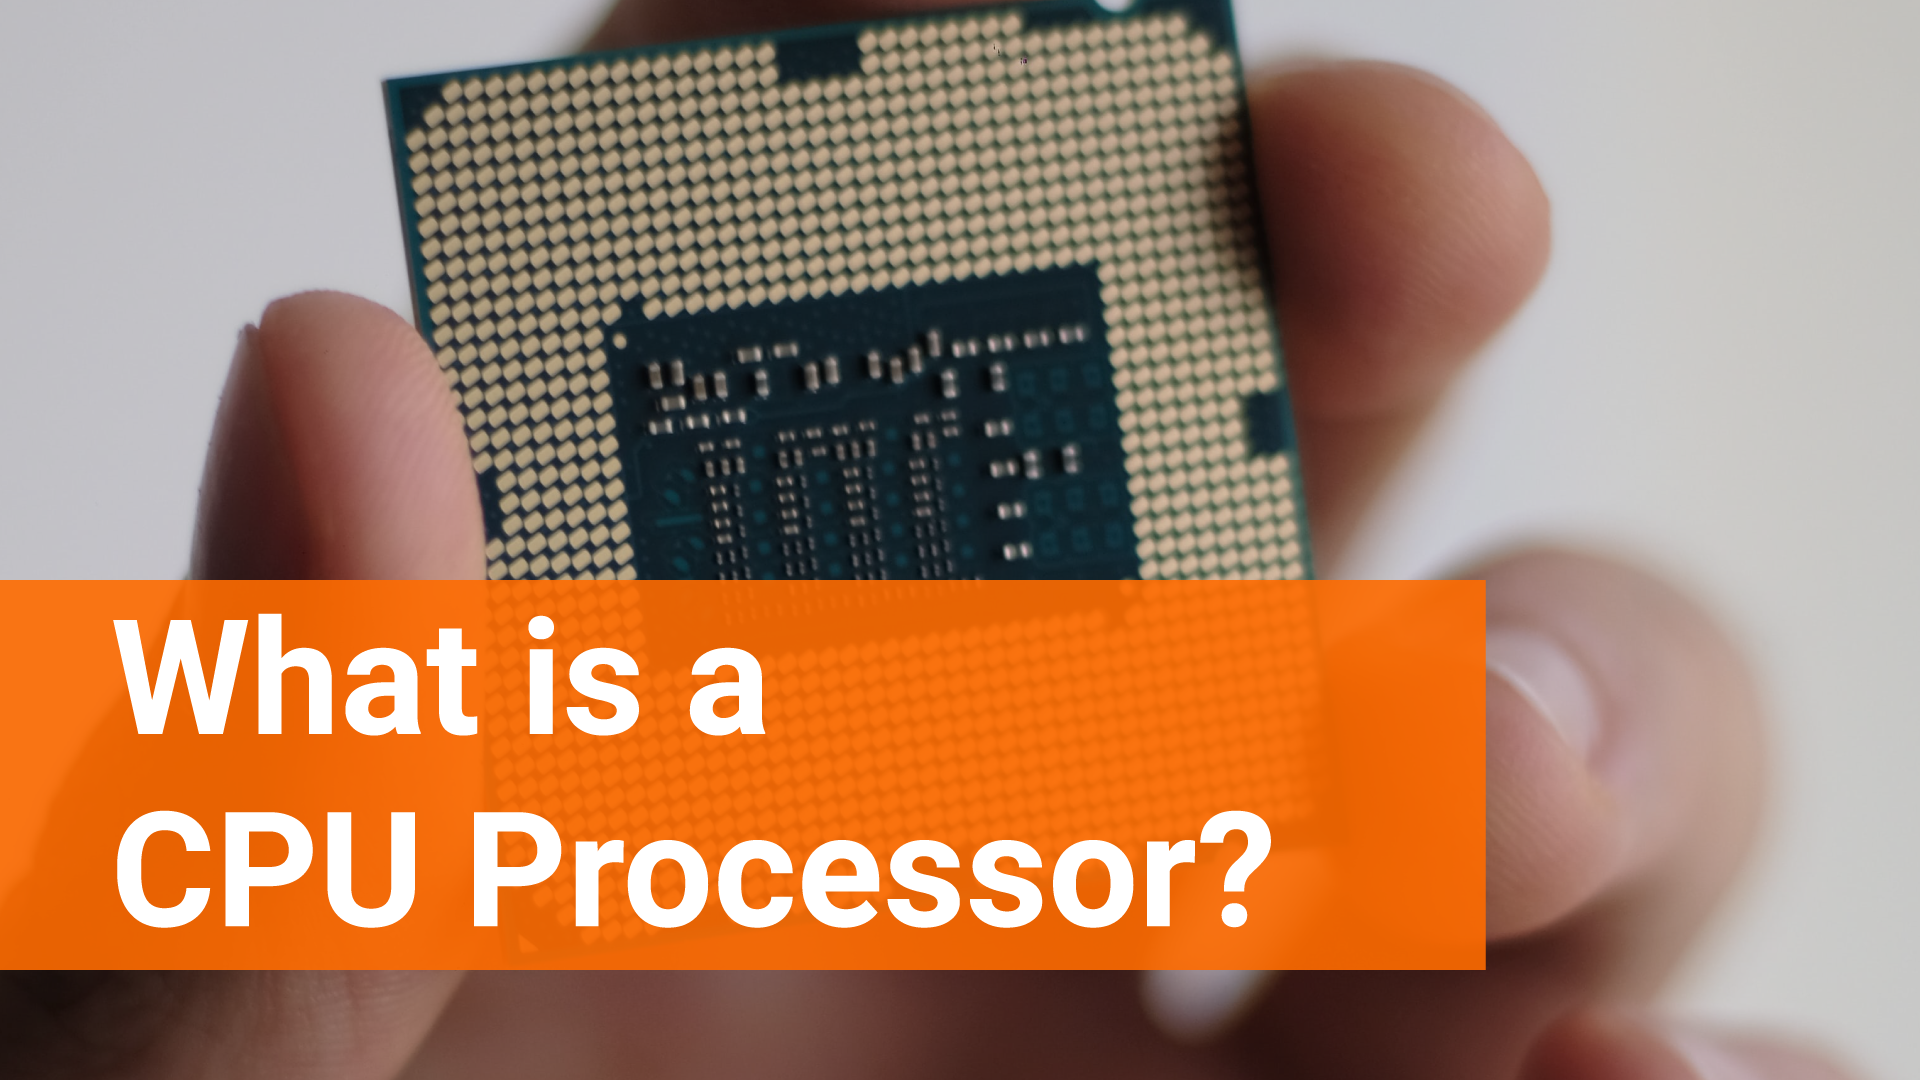 What is a CPU Processor?